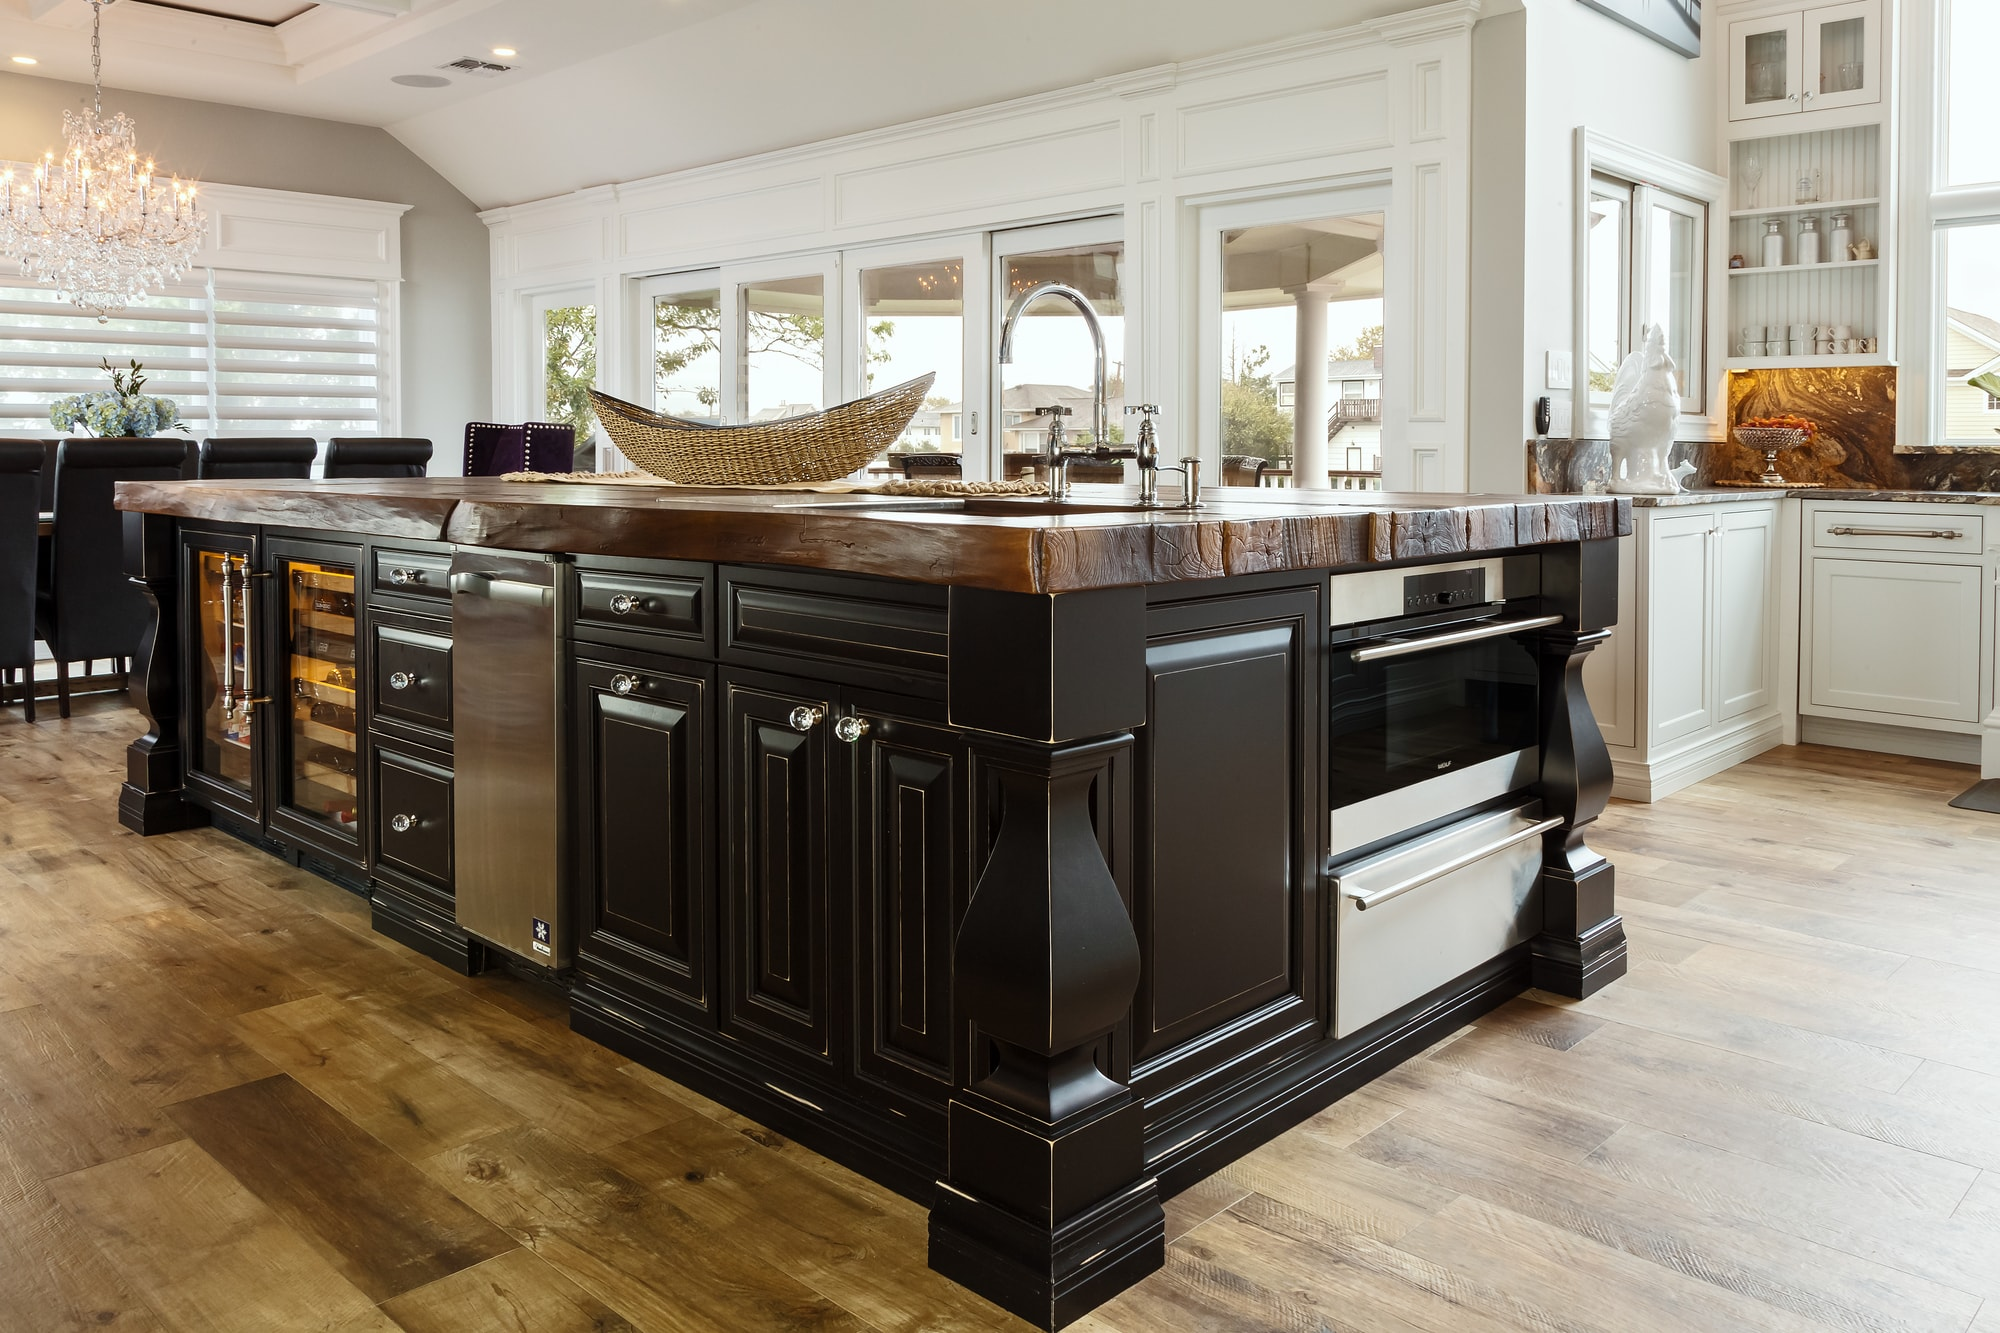 Traditional style kitchen with custom built cabinets and drawers